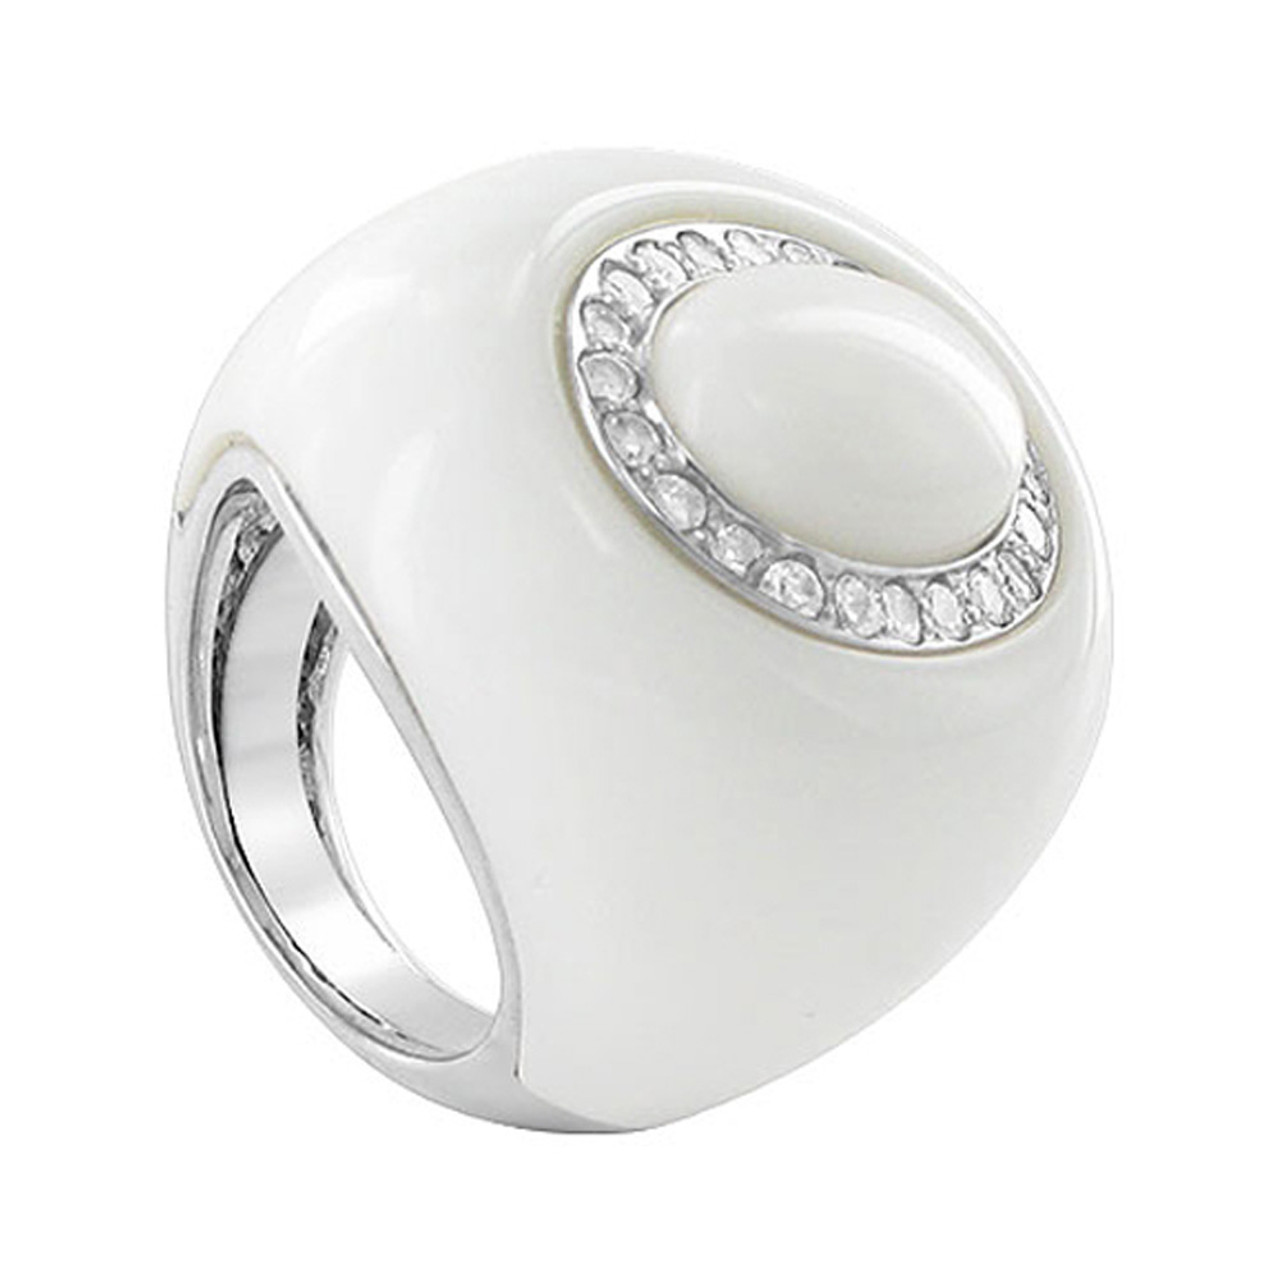 Sterling Silver Oval Simulated White Stone Cocktail Ring